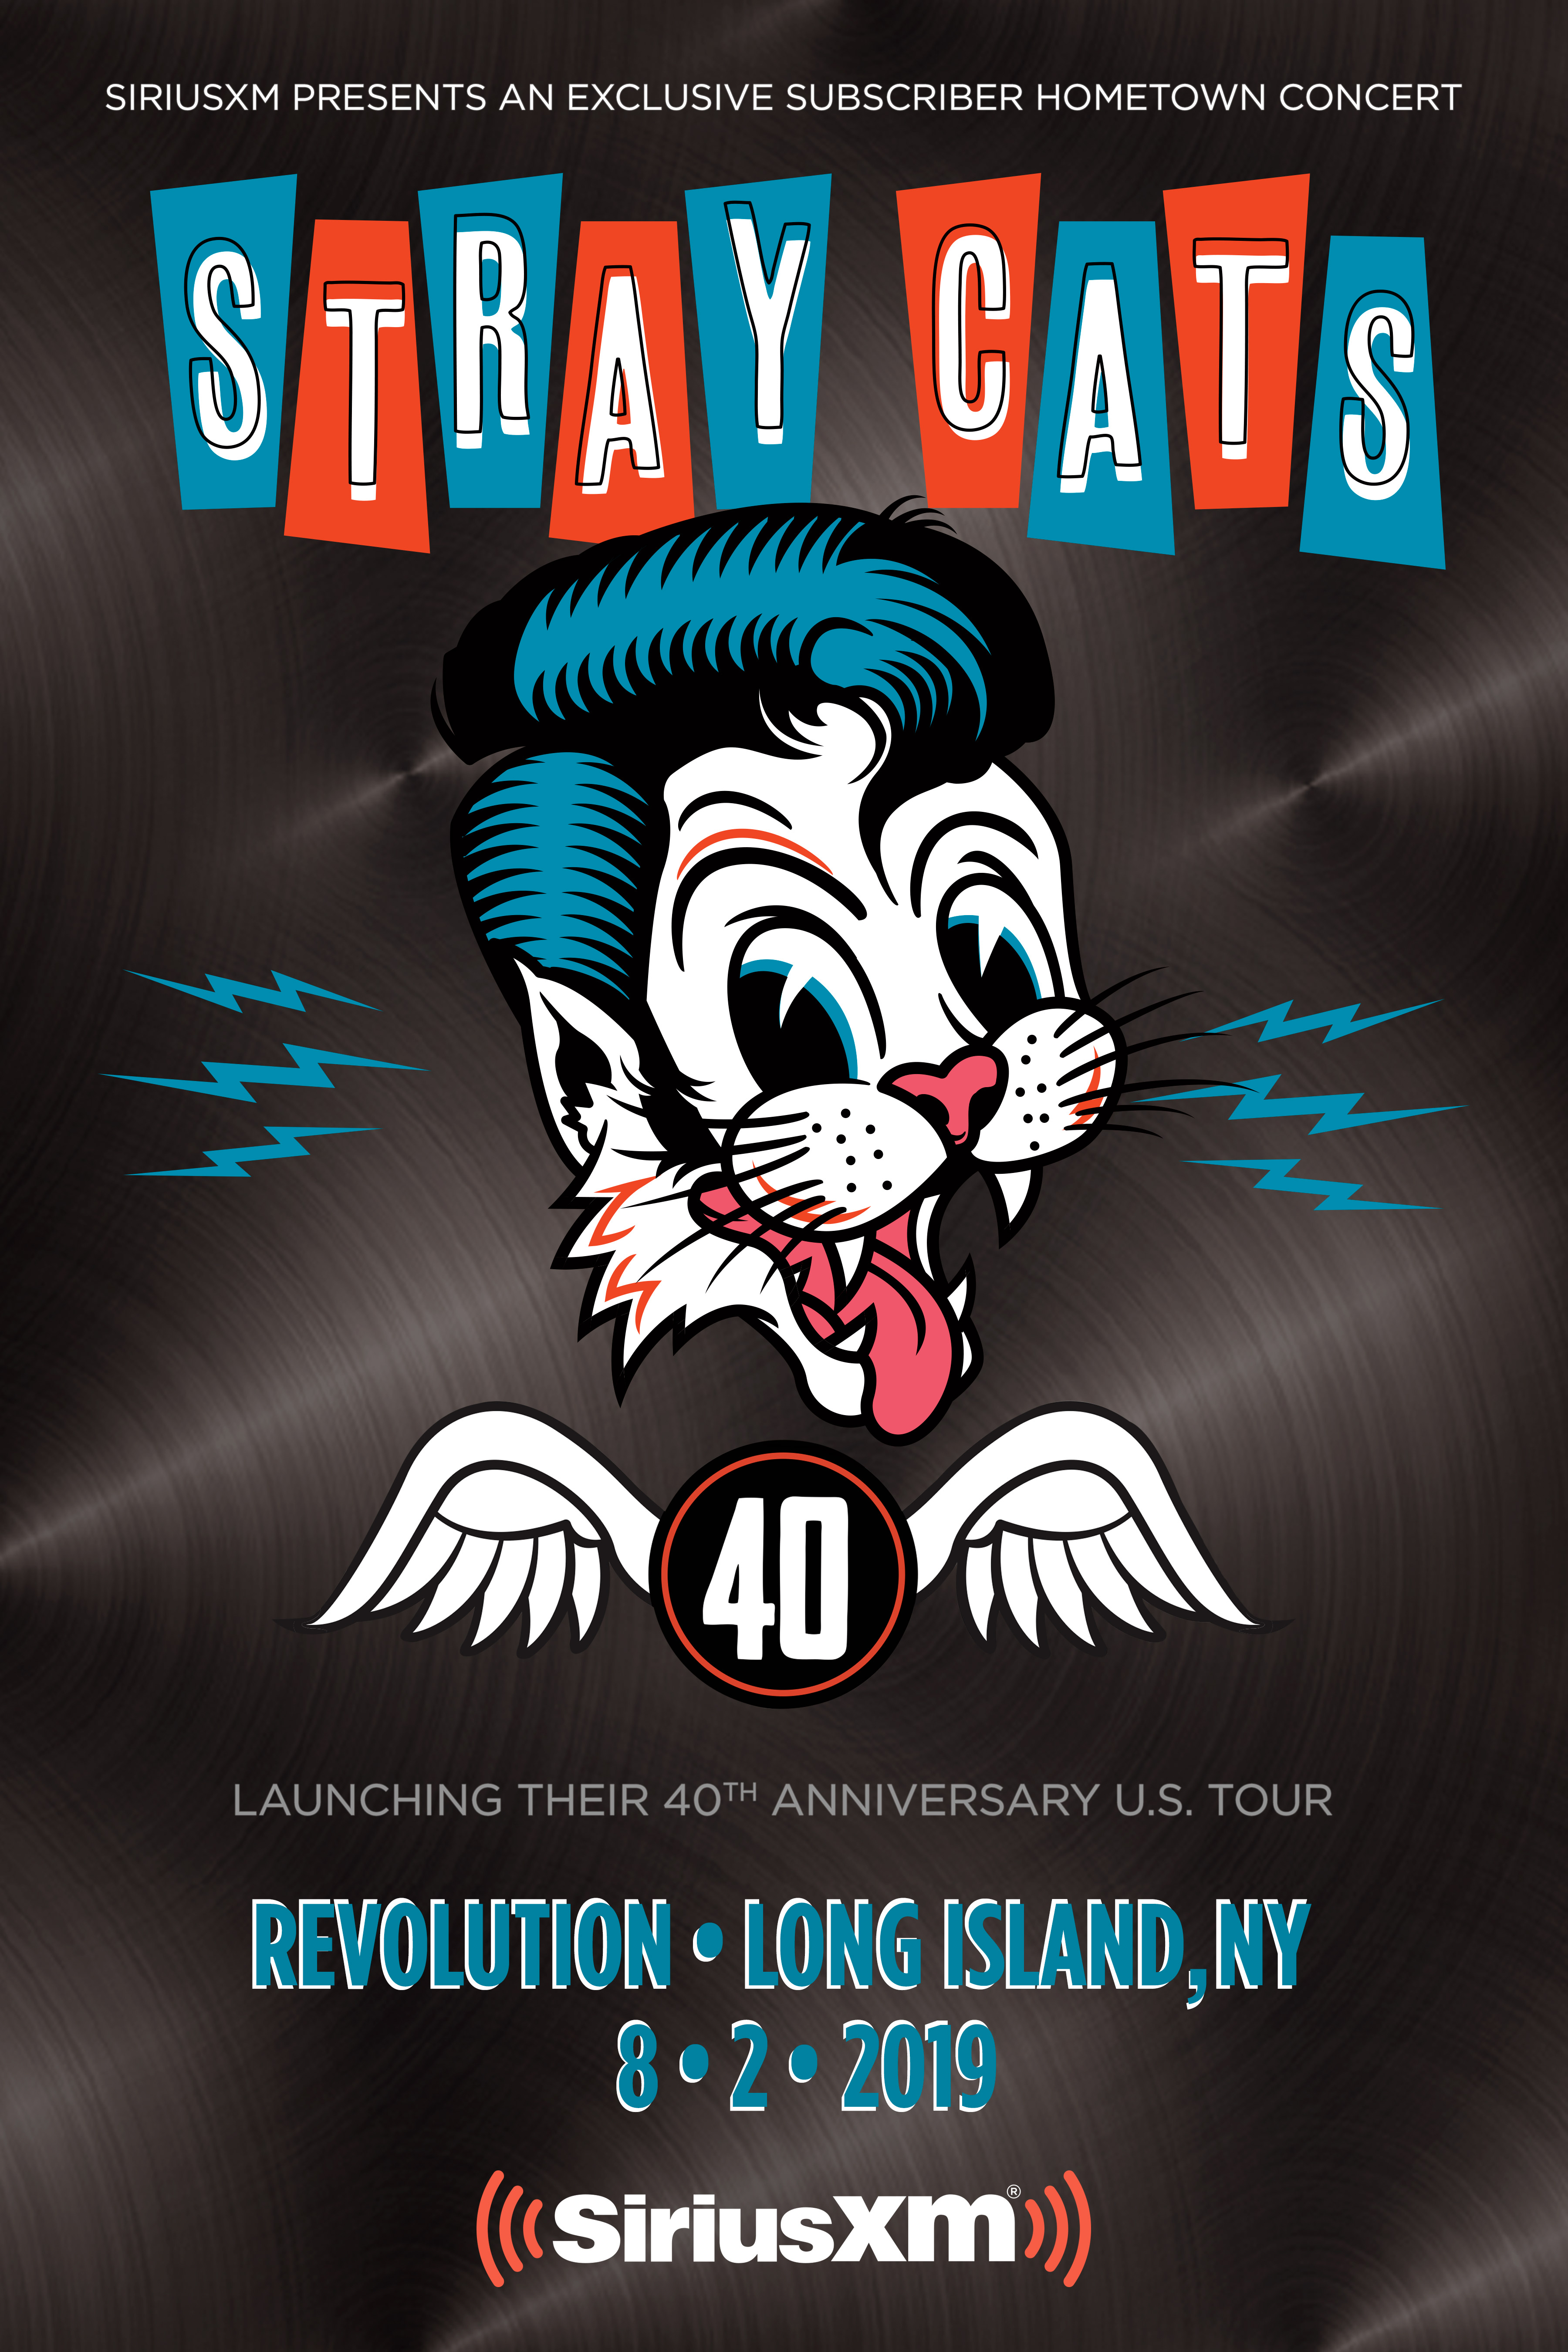 SIRIUSXM PRESENTS A HOMETOWN CONCERT WITH THE STRAY CATS ON